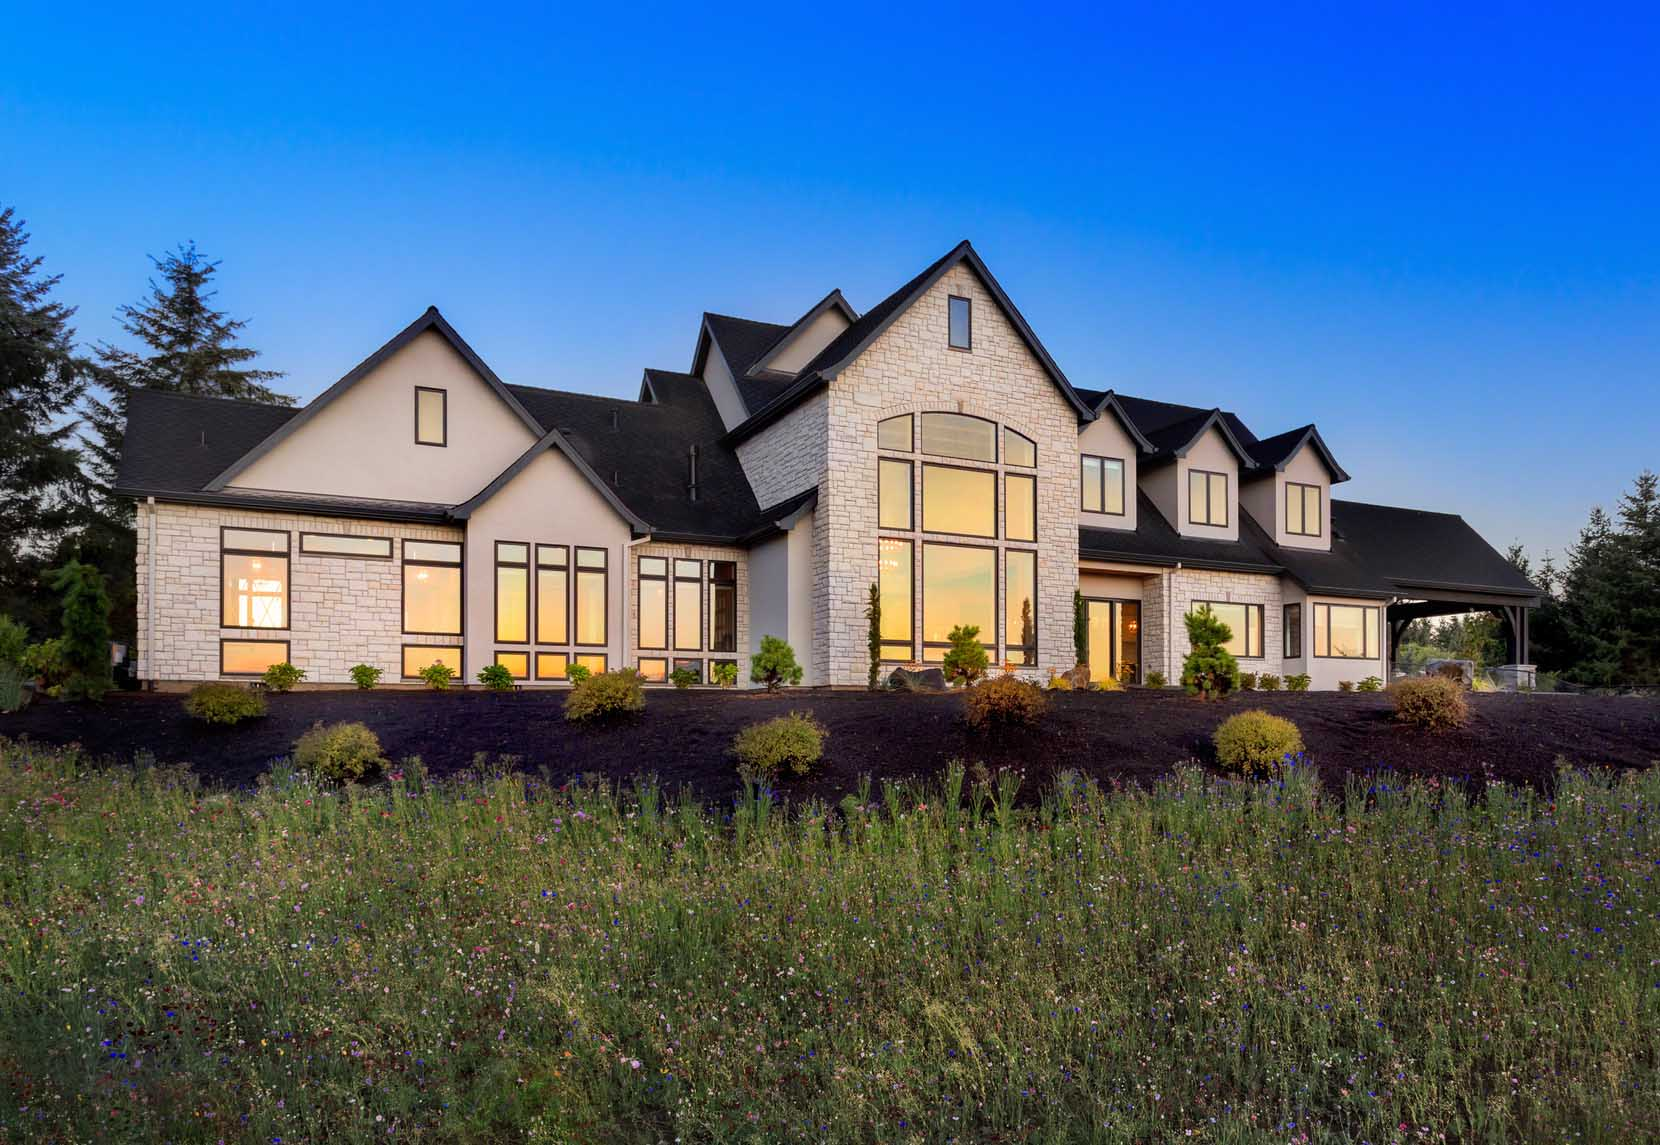 Beautiful home exterior at night for Luxury home windows